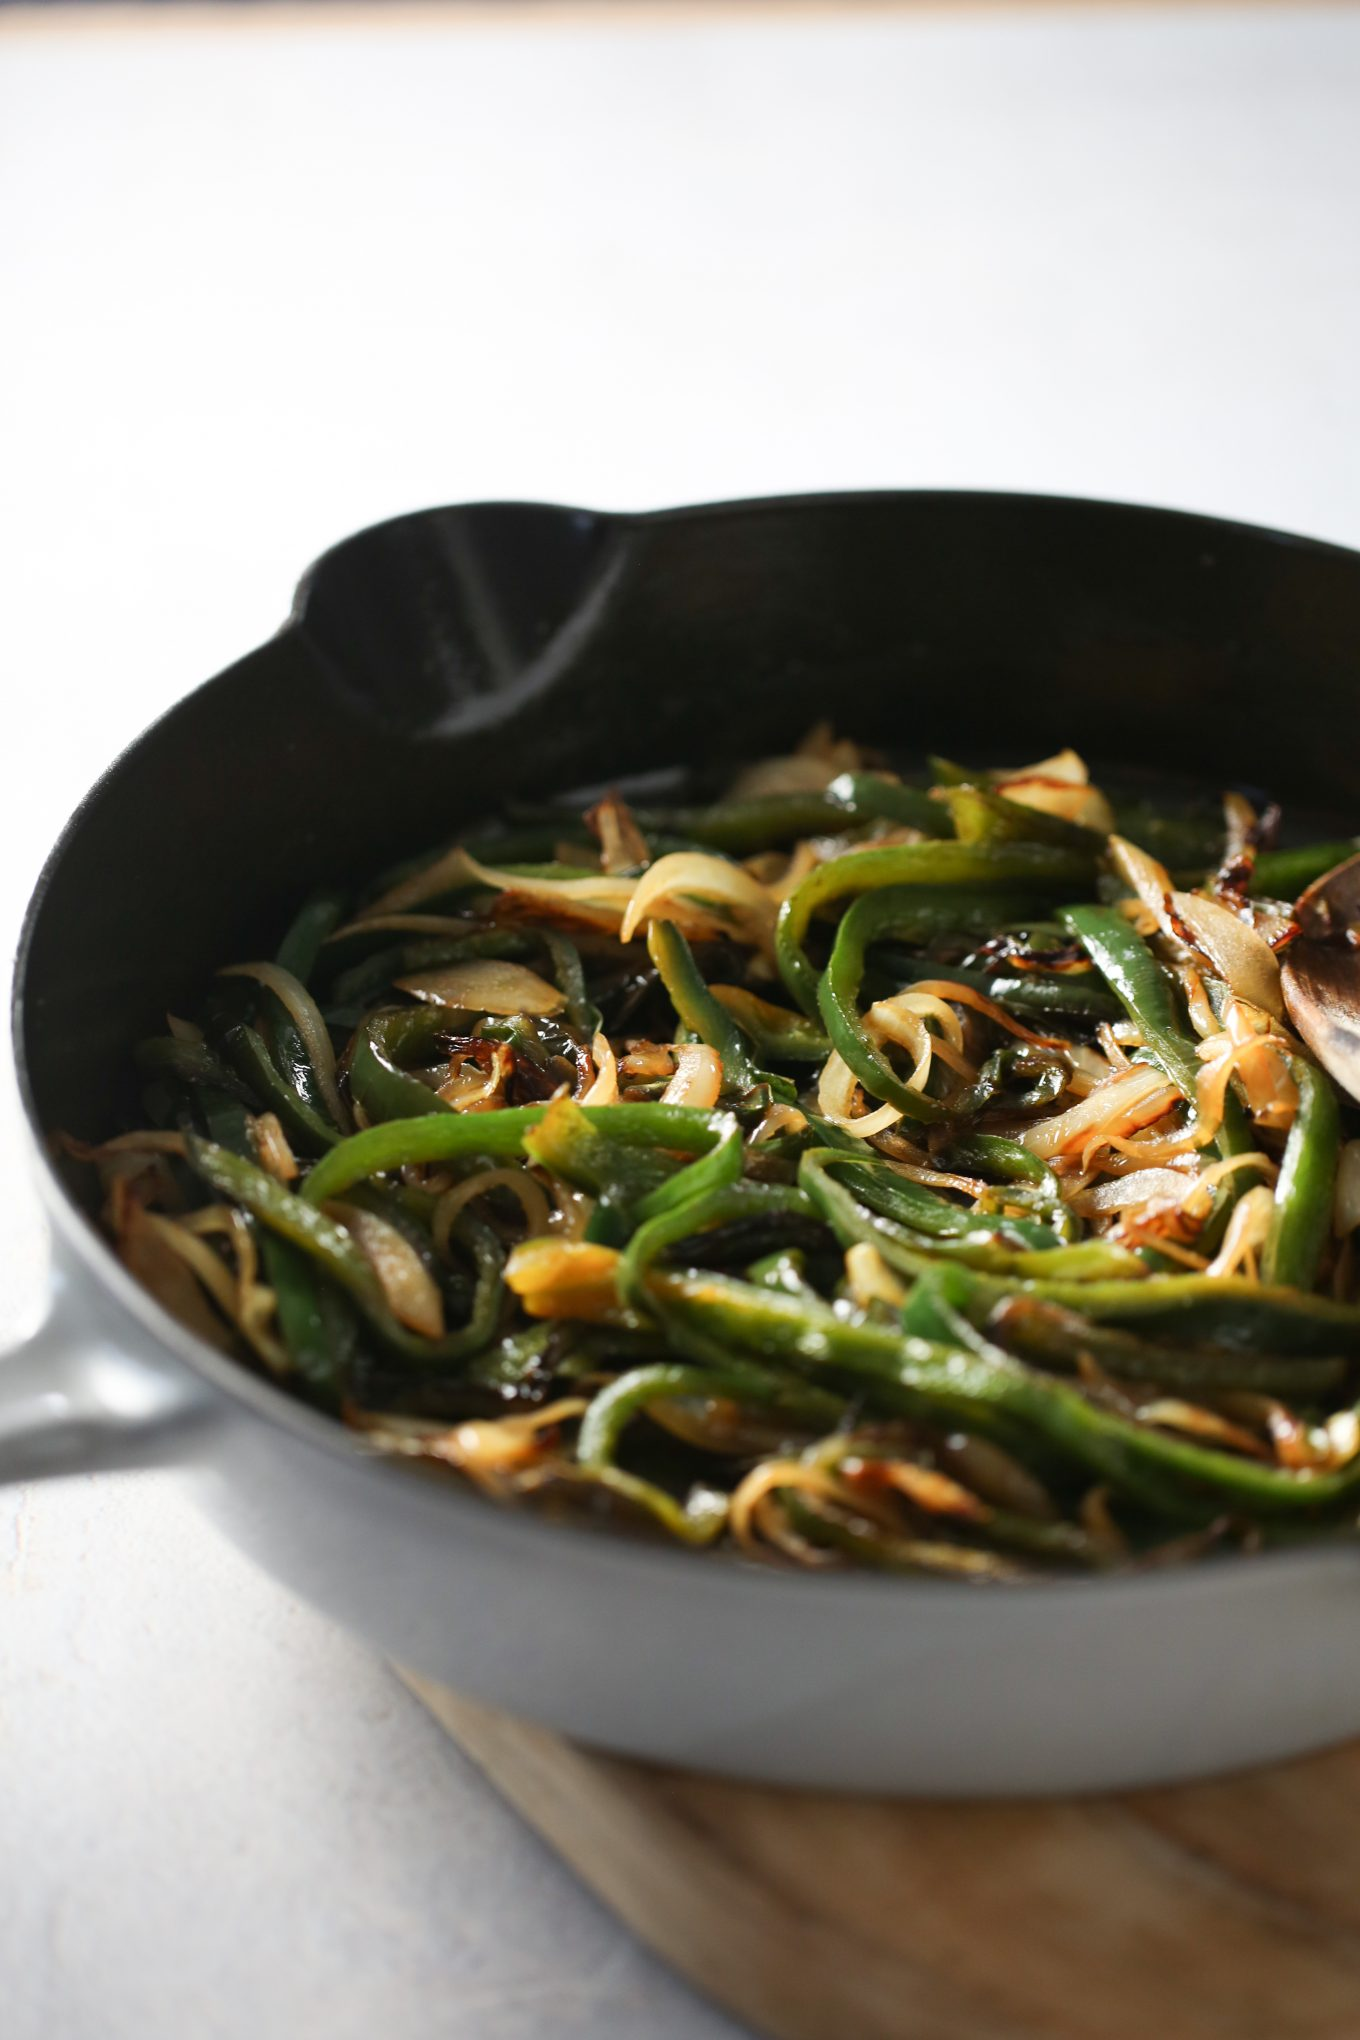 Rasted poblano peppers with onions in an iron cast skillet